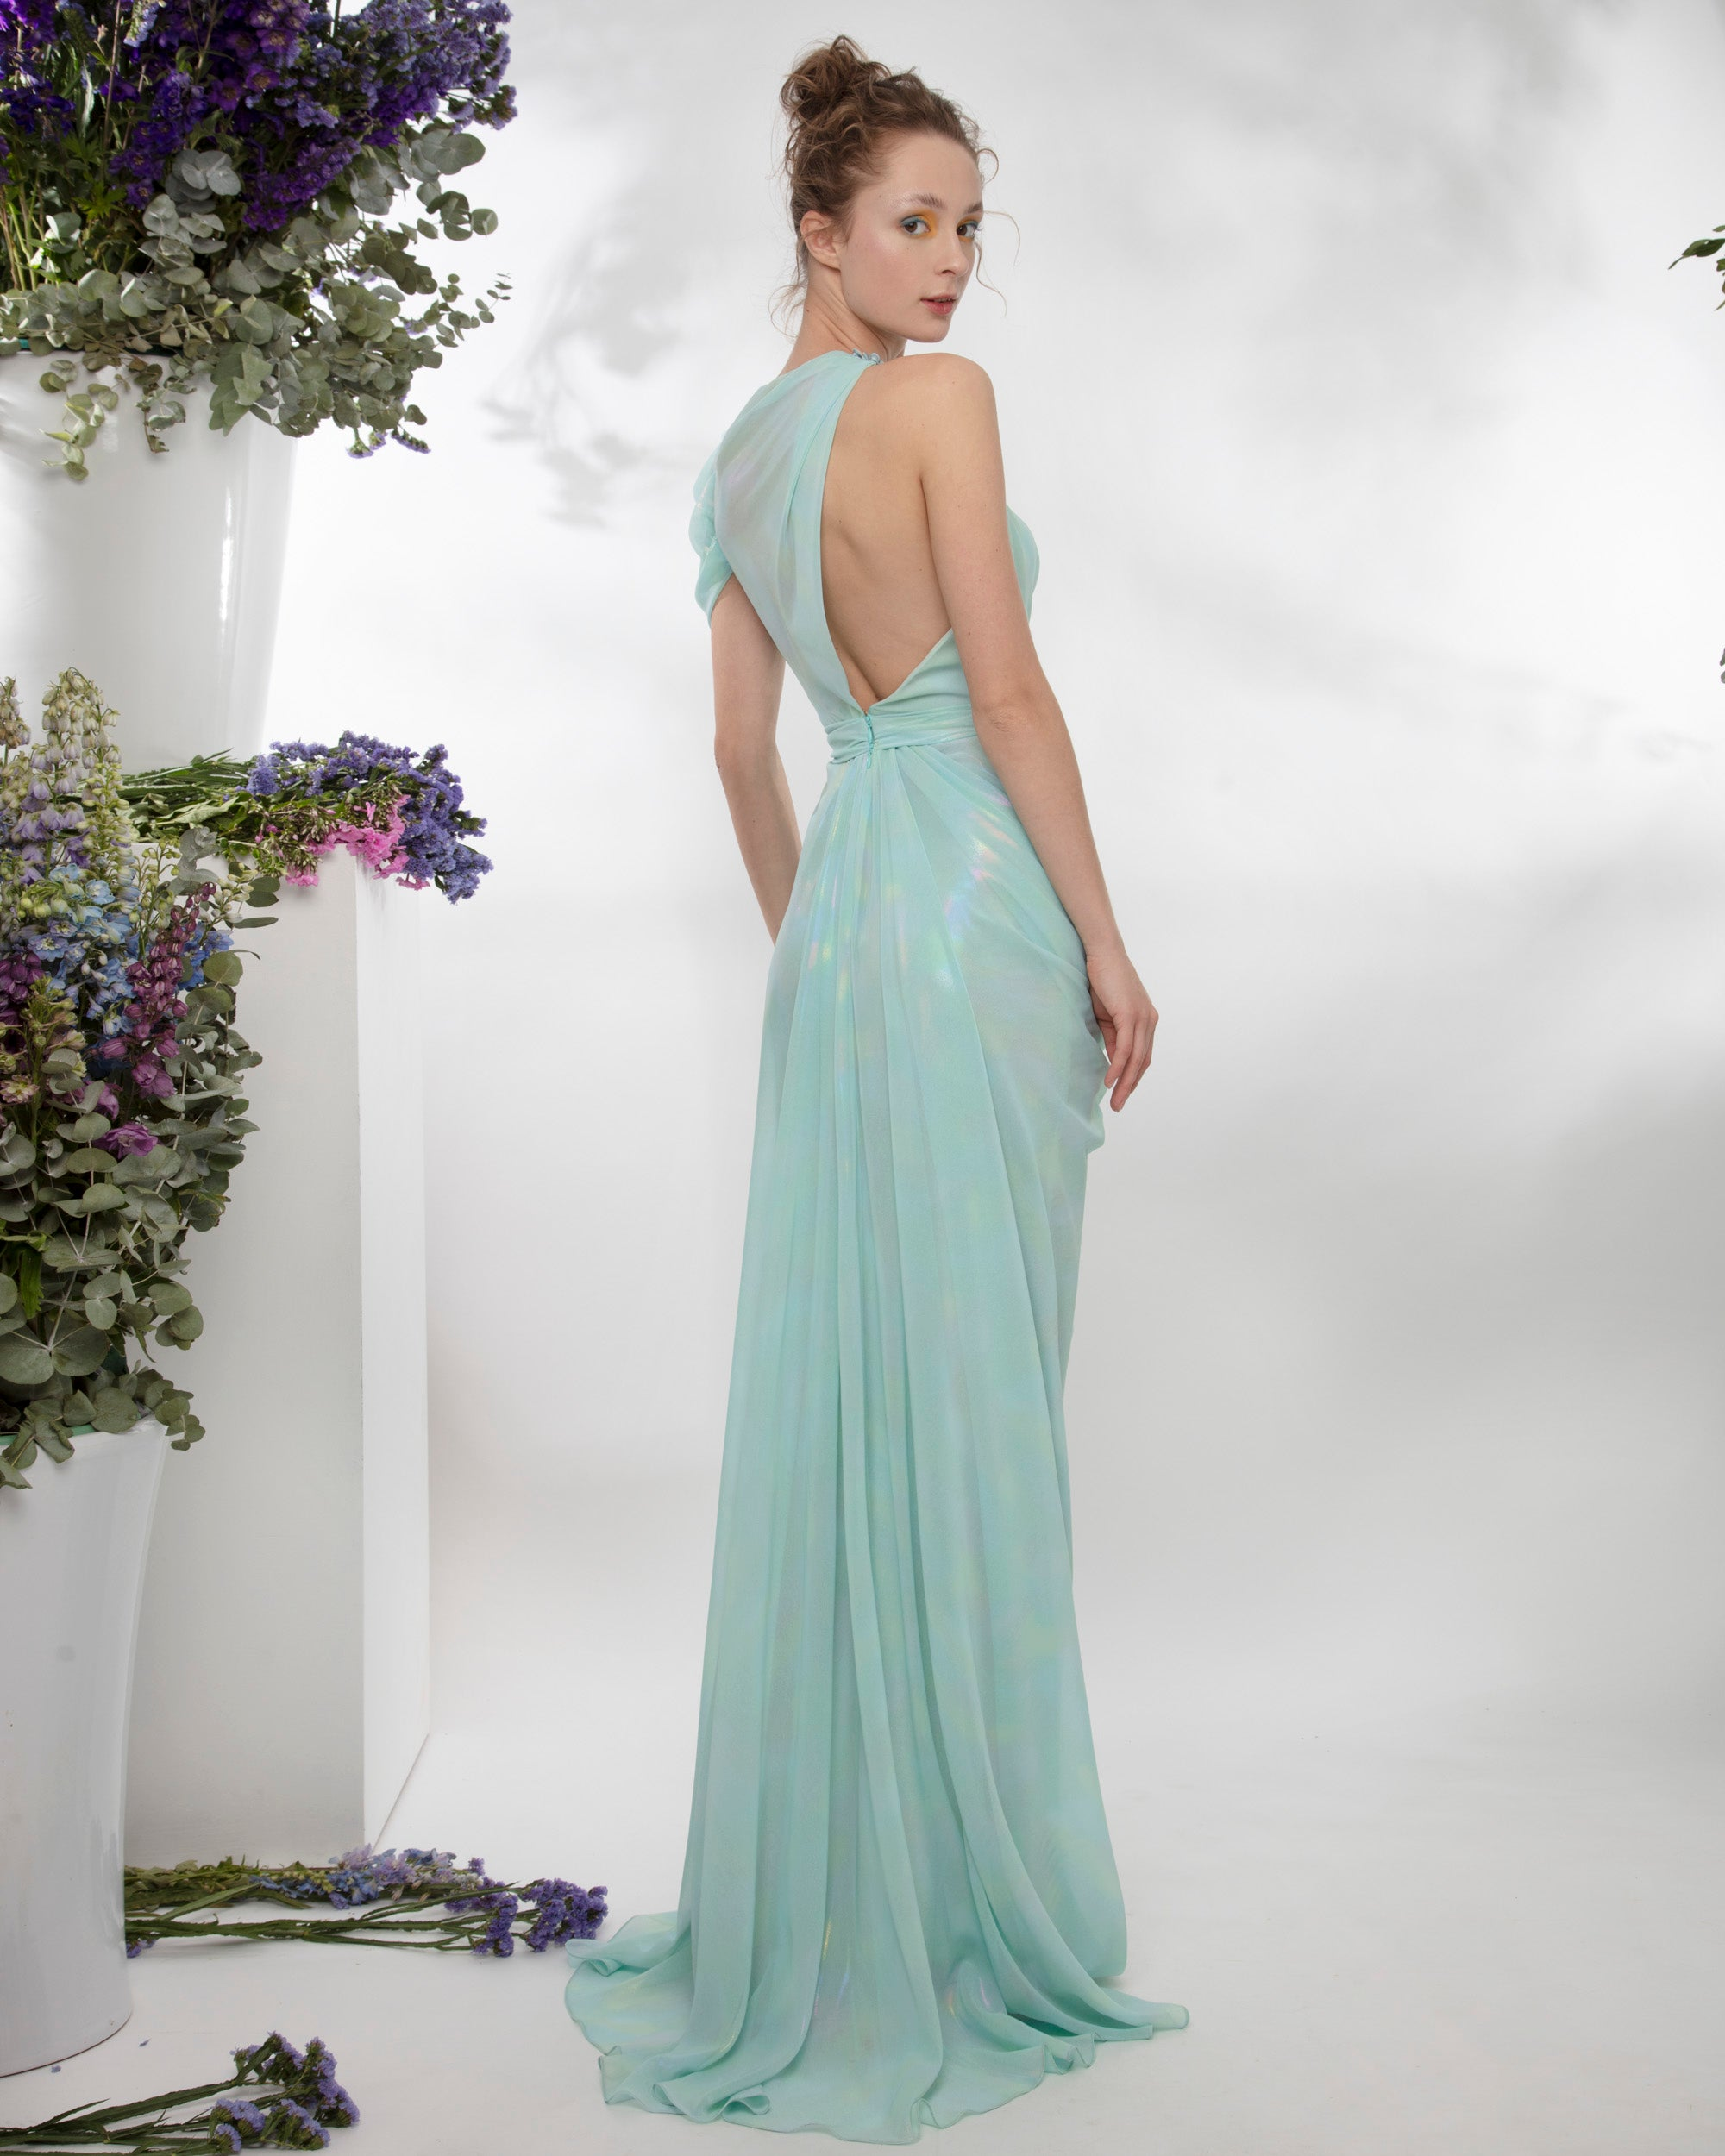 Iridescent draped long dress